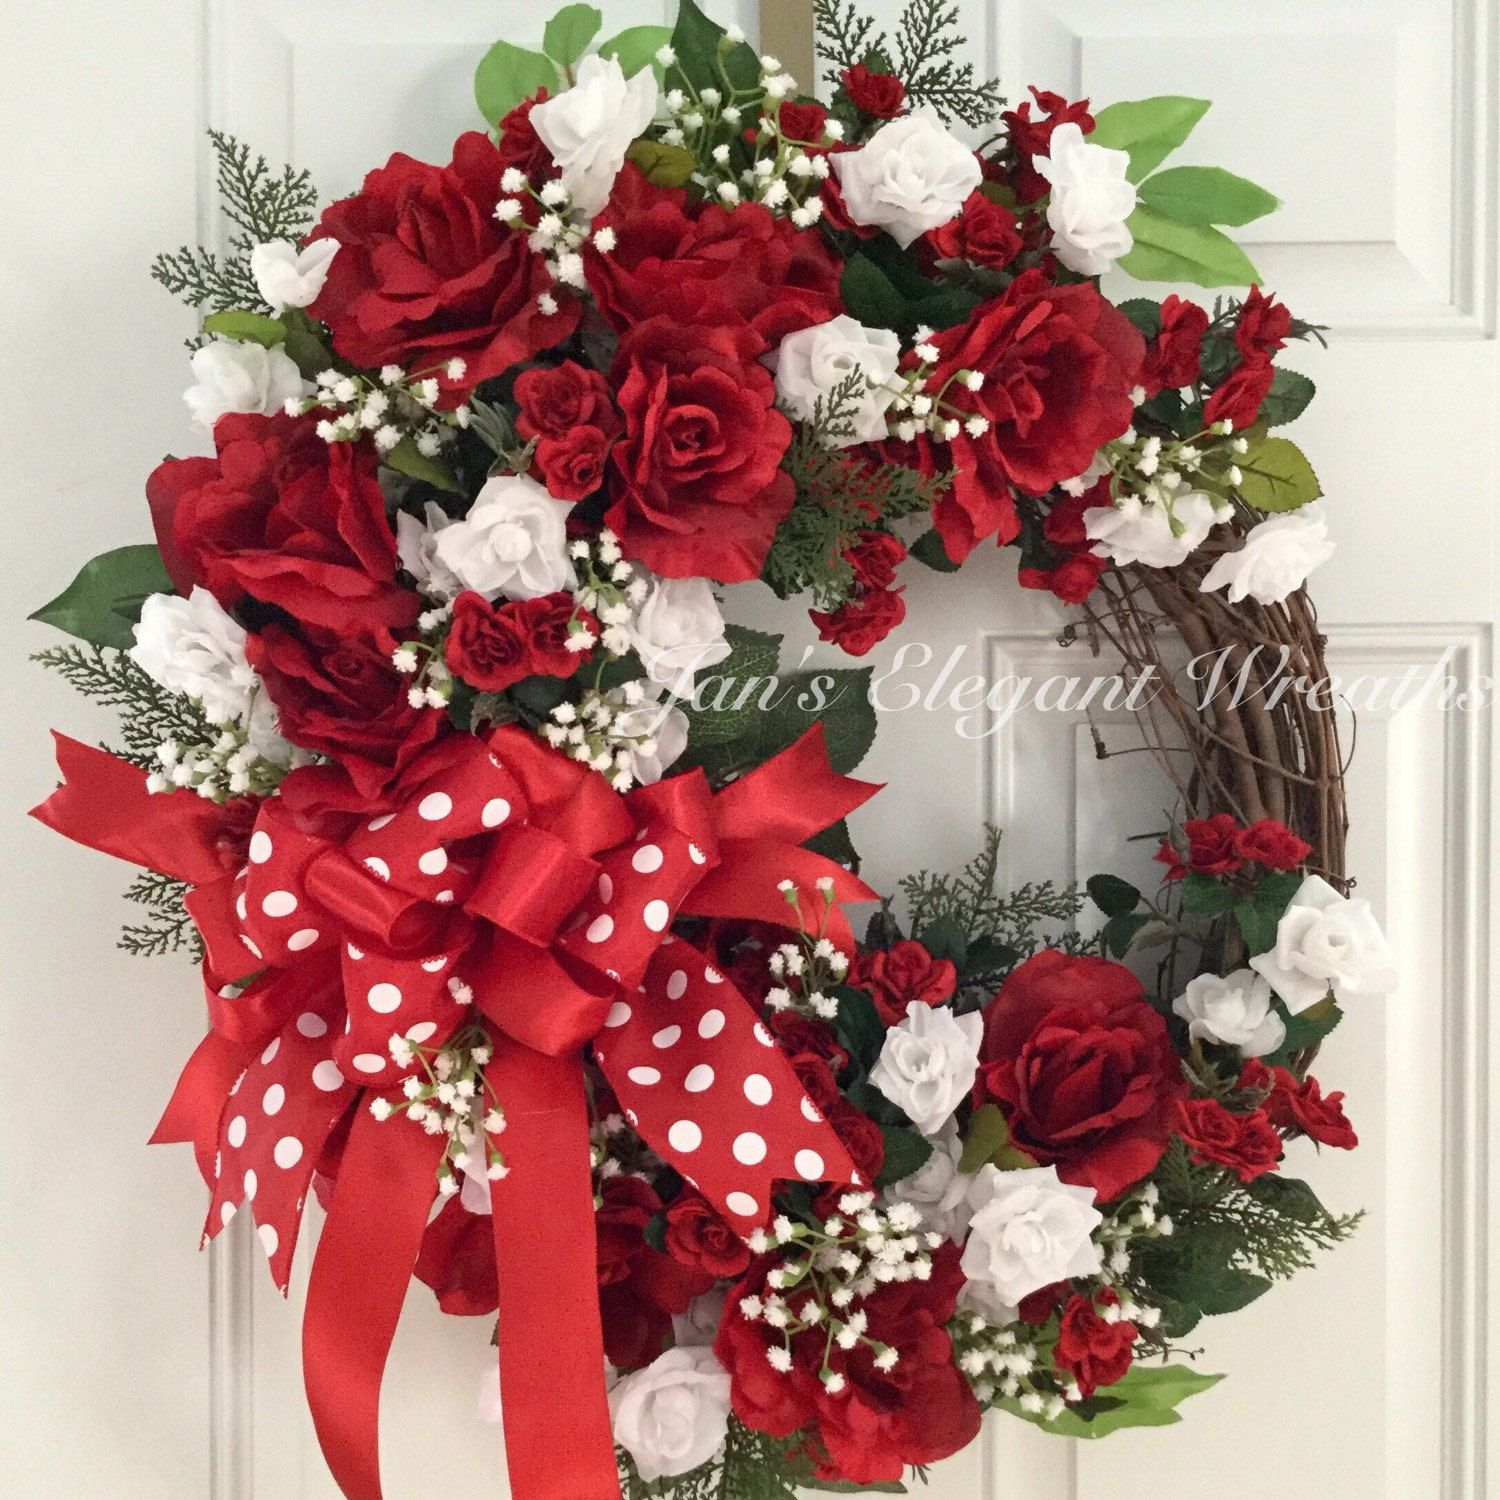 Another Red Rose Wreath For Spring Red Rose Wreath Spring Wreath Rose Wreath